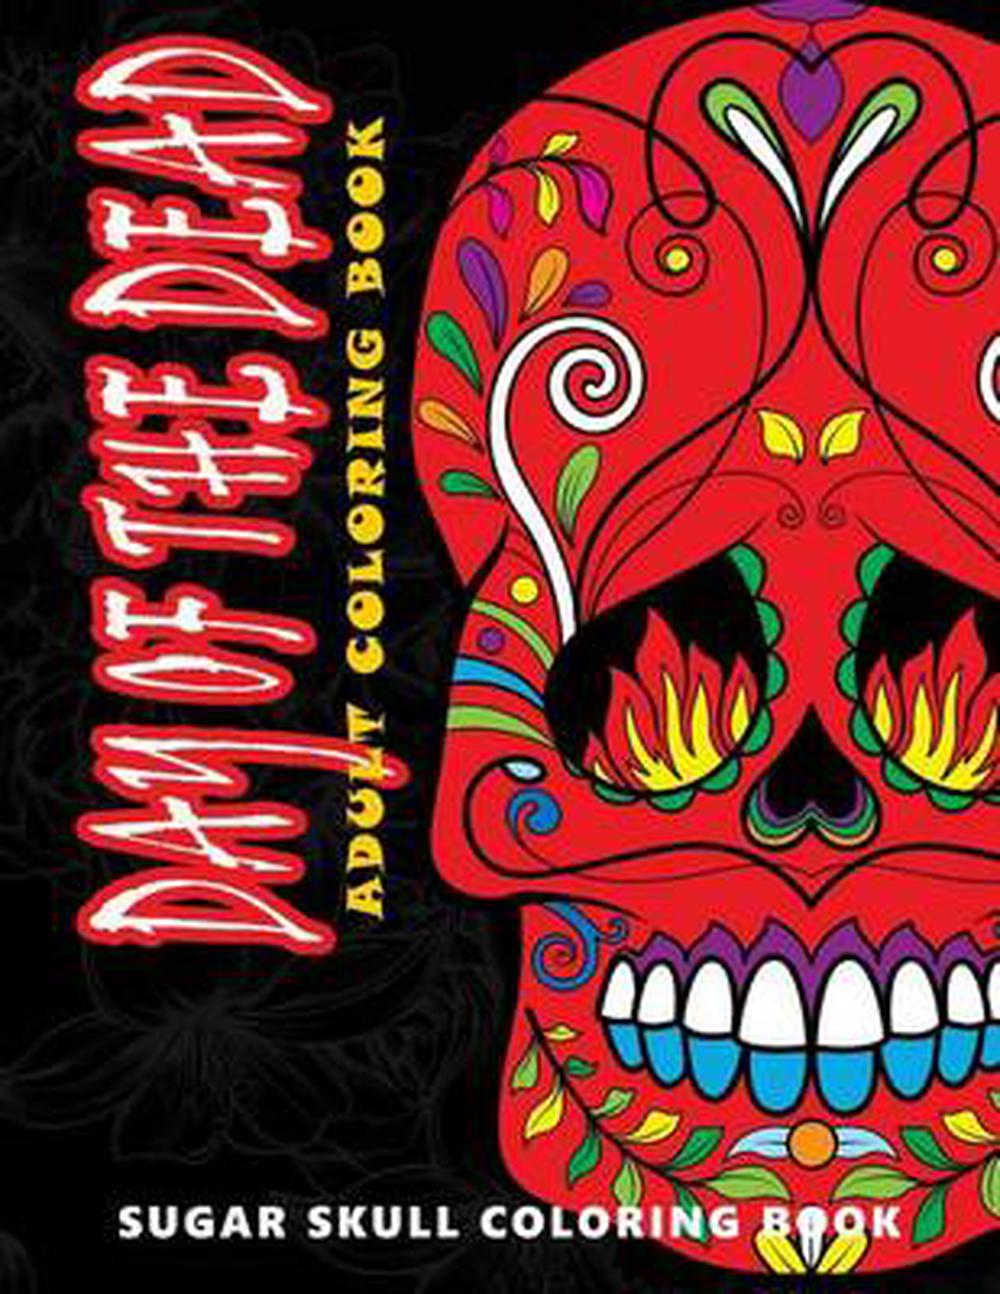 Details about Day of the Dead: Sugar Skull Coloring Book at Midnight  Version ( Skull Coloring